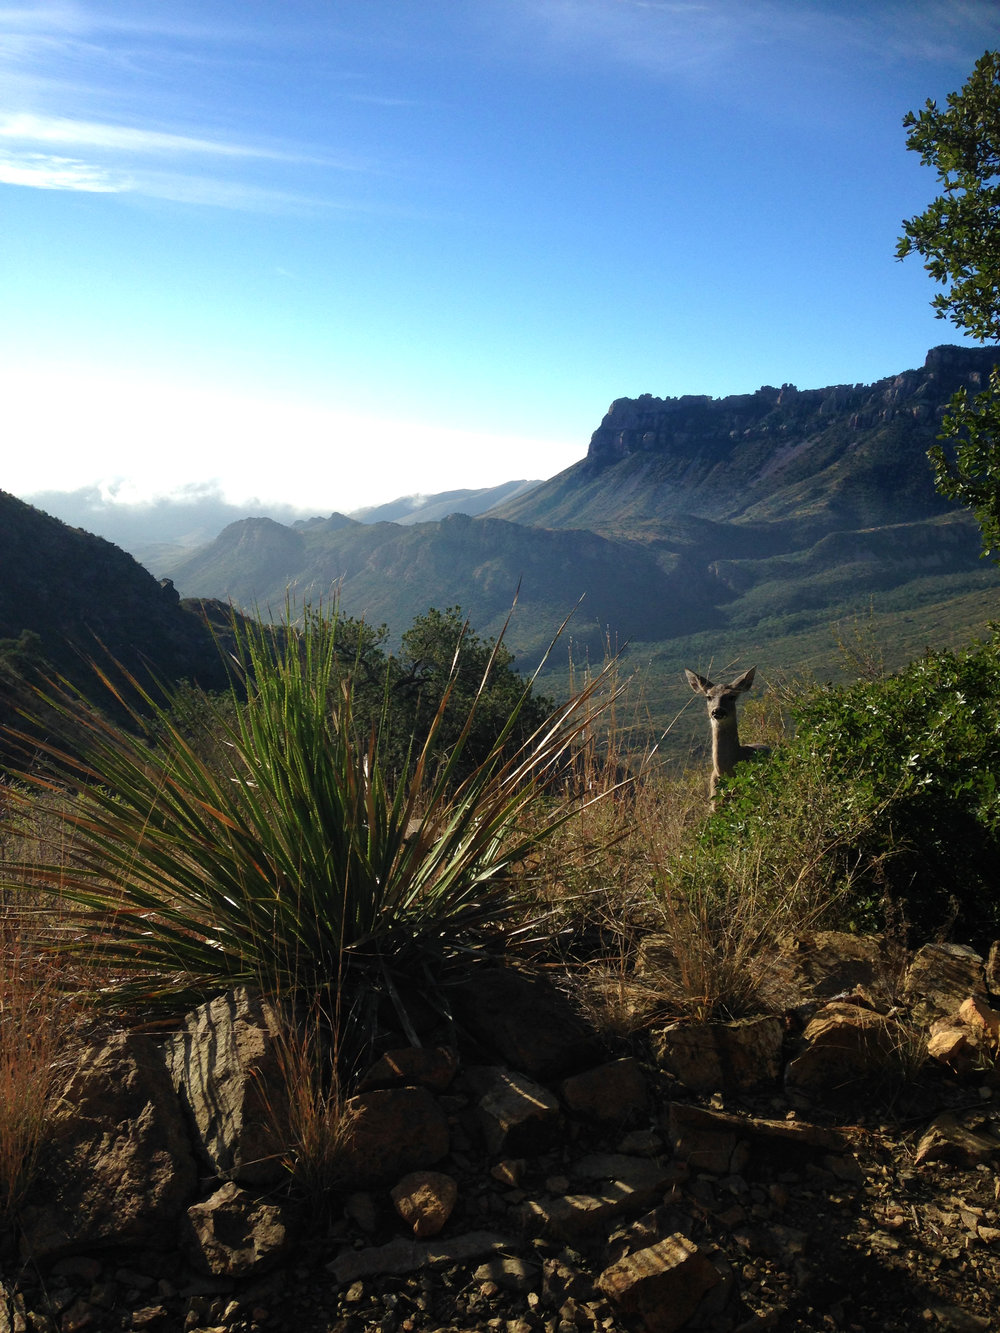 Taken in the Chisos Mountains of Big Bend National Park in Texas ^